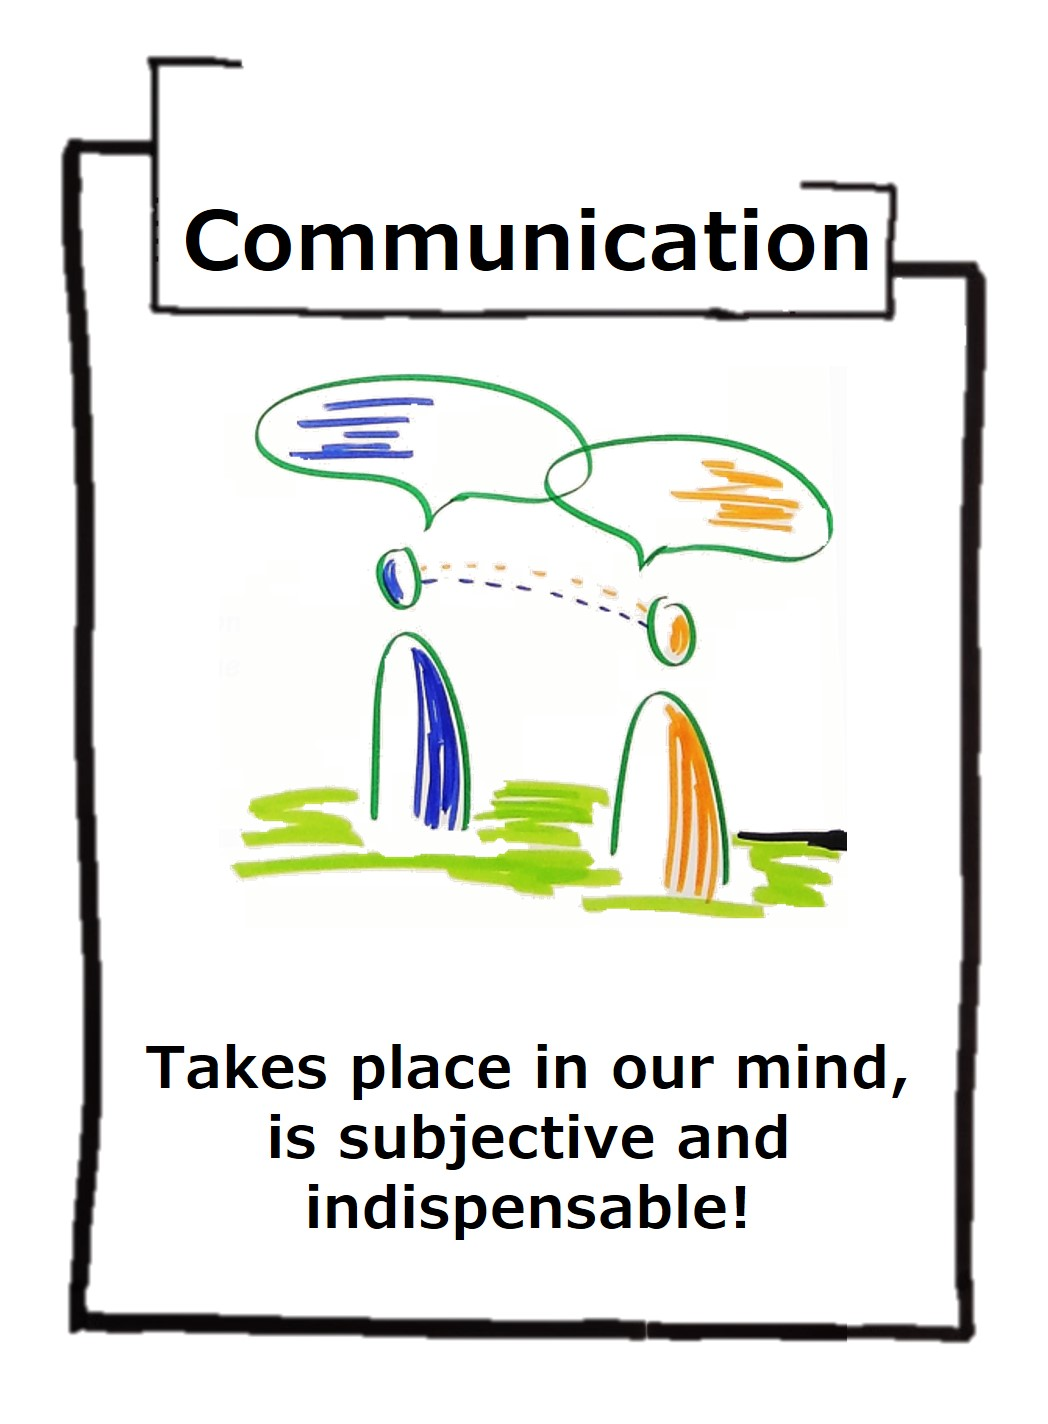 Communication is subjective and takes place in the head - but it is vital and keeps us healthy!